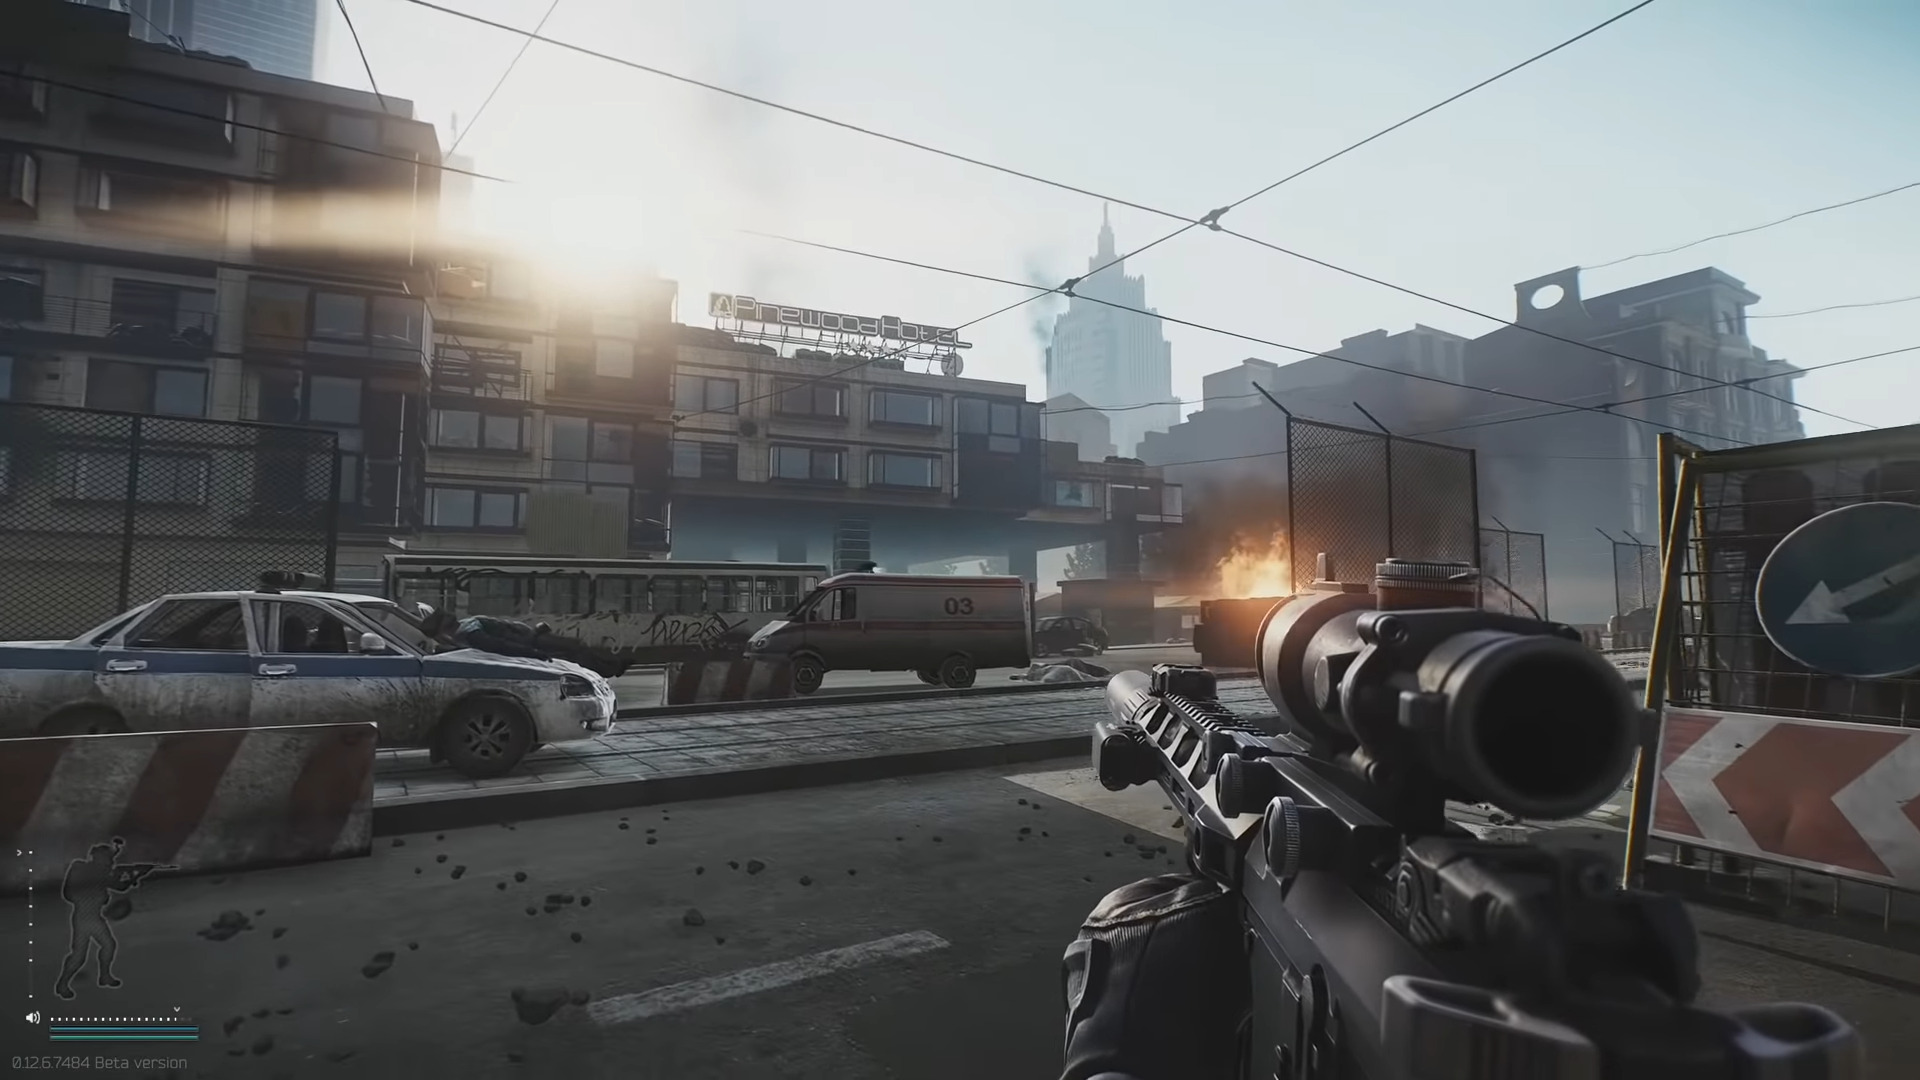 Cheating Within Escape From Tarkov Reaches An All Time High After Recent Banwave